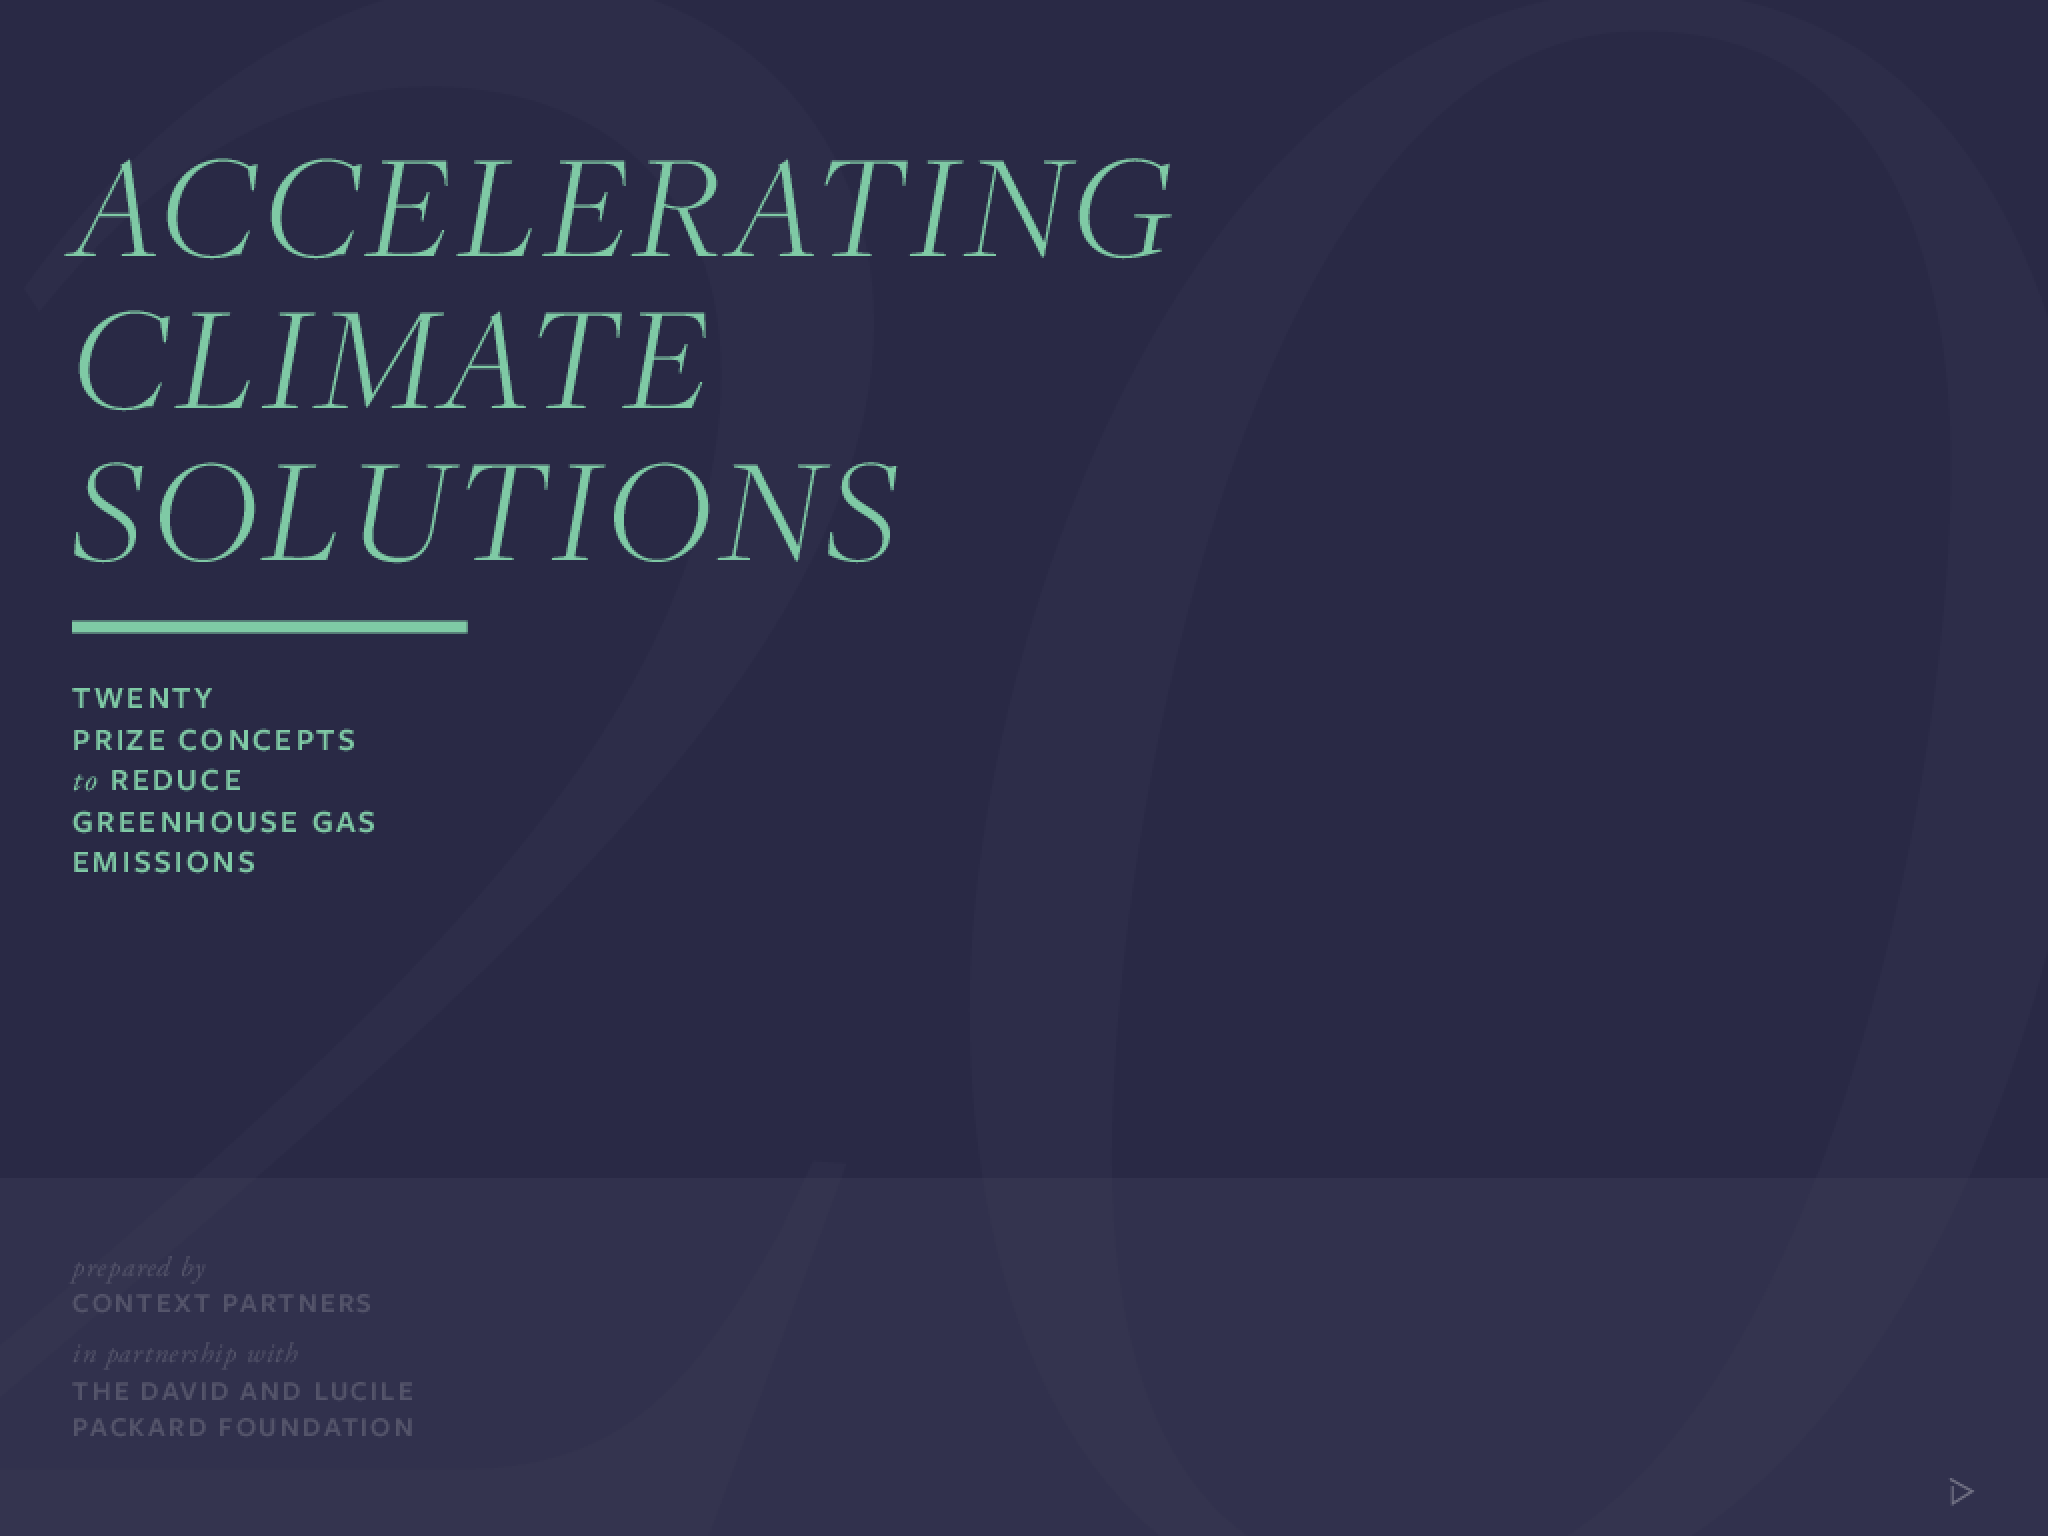 Accelerating Climate Solutions : Twenty Prize Concepts to Reduce Greenhouse Gaz Emissions